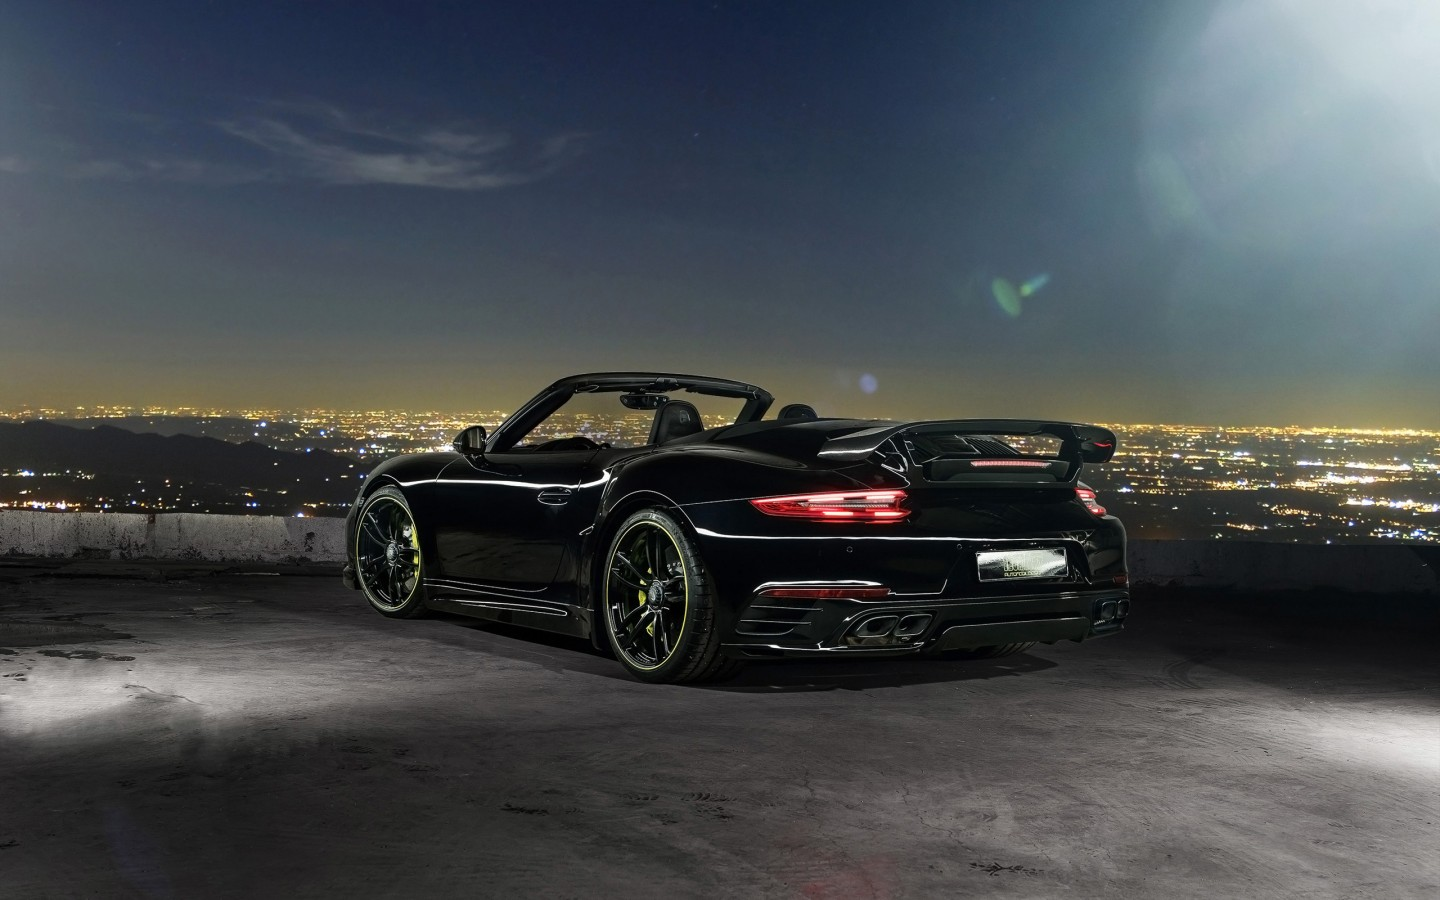 2016 TechArt Porsche 911 Convertible Rear Wallpaper | HD Car Wallpapers | ID #6608